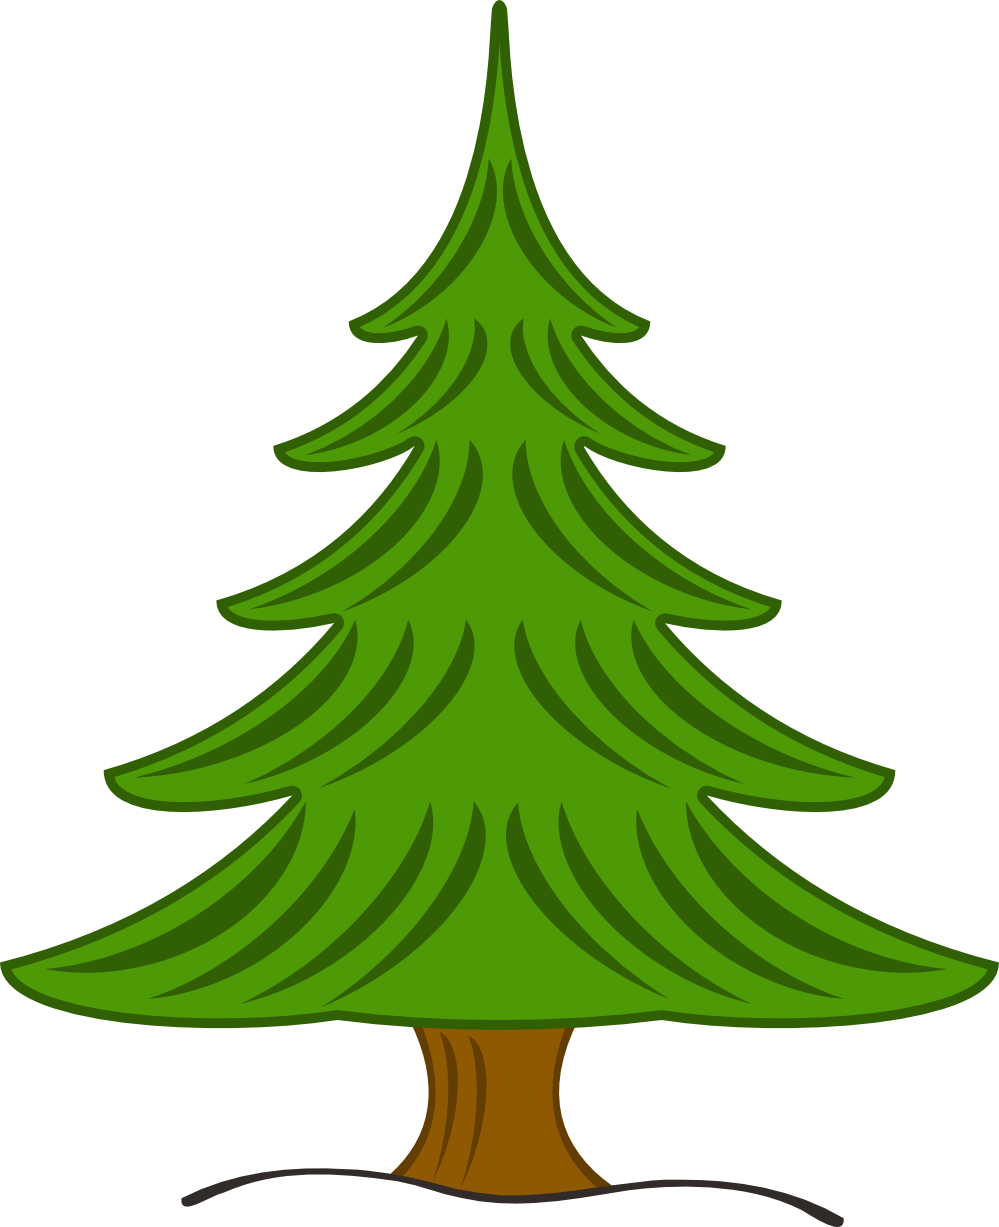 Xmas Christmas Tree 22 999px Png 999 1 227 Pixels Christmas Tree Clipart Christmas Tree Without Ornaments Silhouette Cameo Christmas